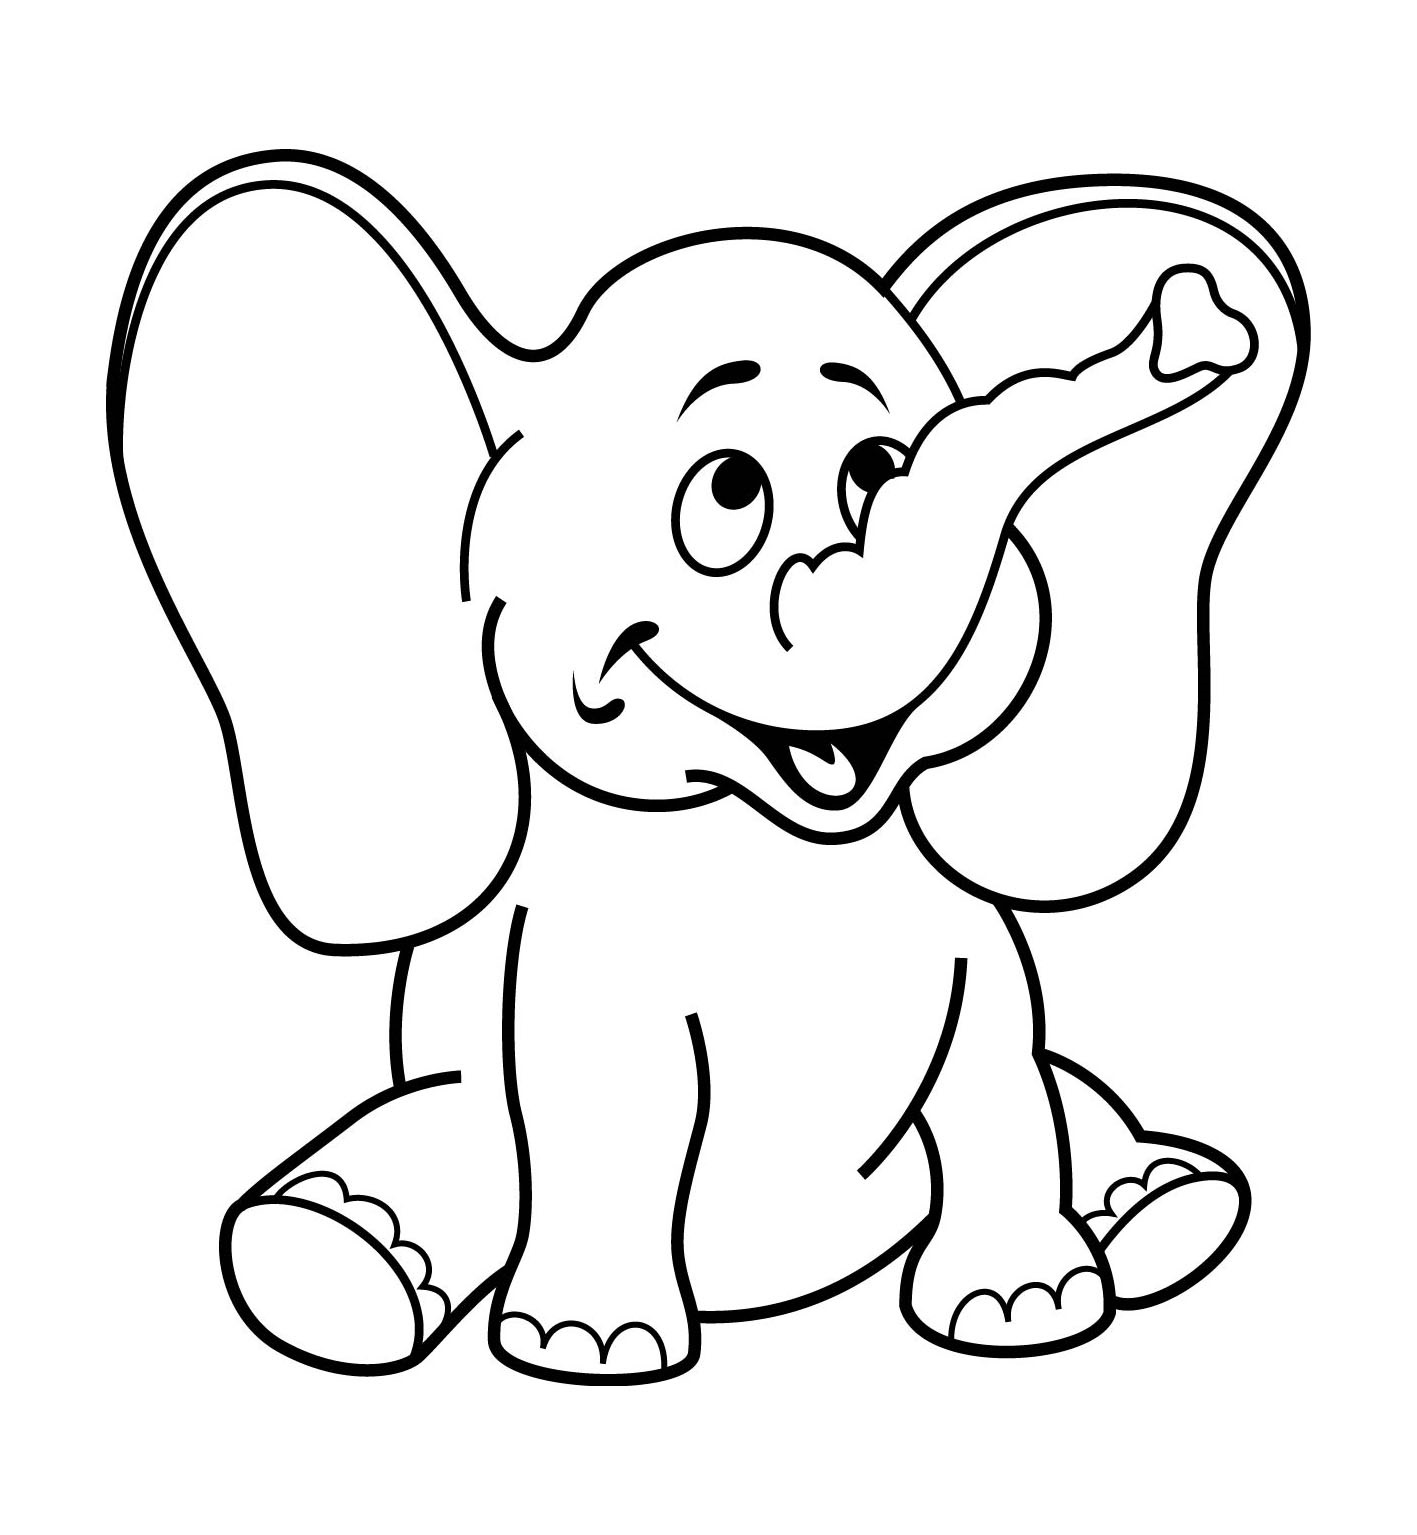 1417x1535 Charming Design Coloring Pages For Year Olds Animal Biblical